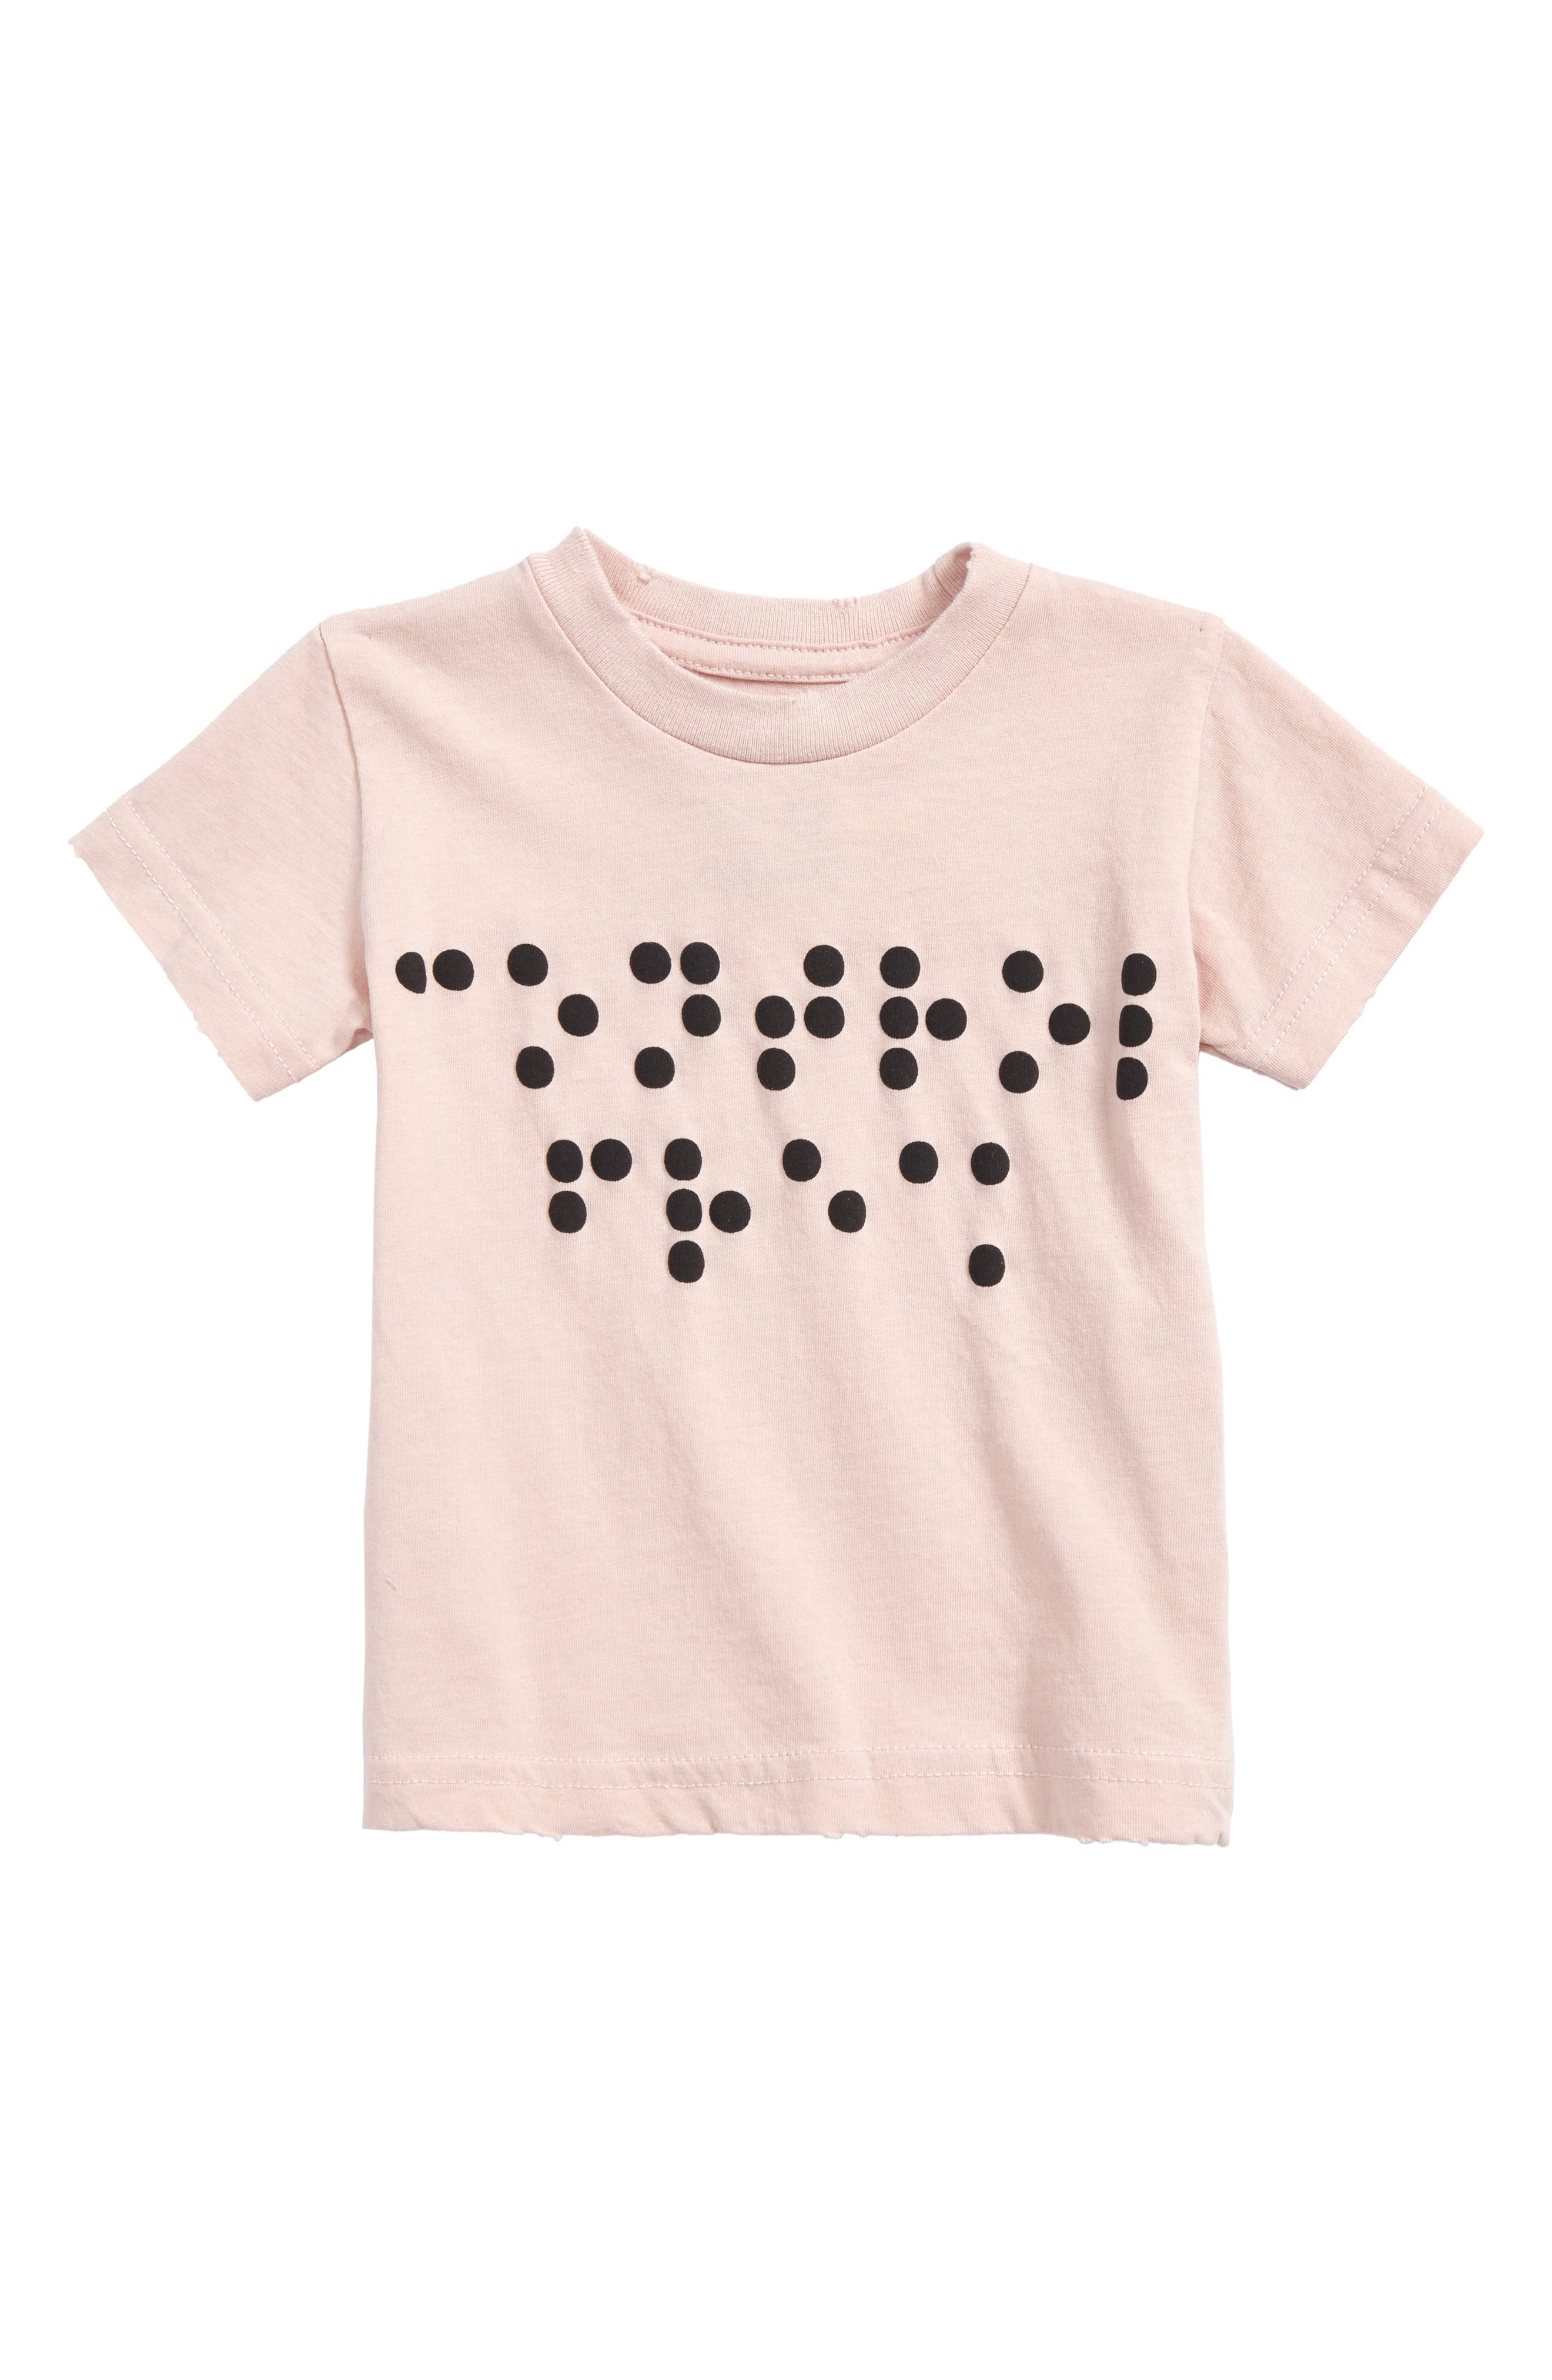 Braille Dot Tee,                         Main,                         color, Powder Pink